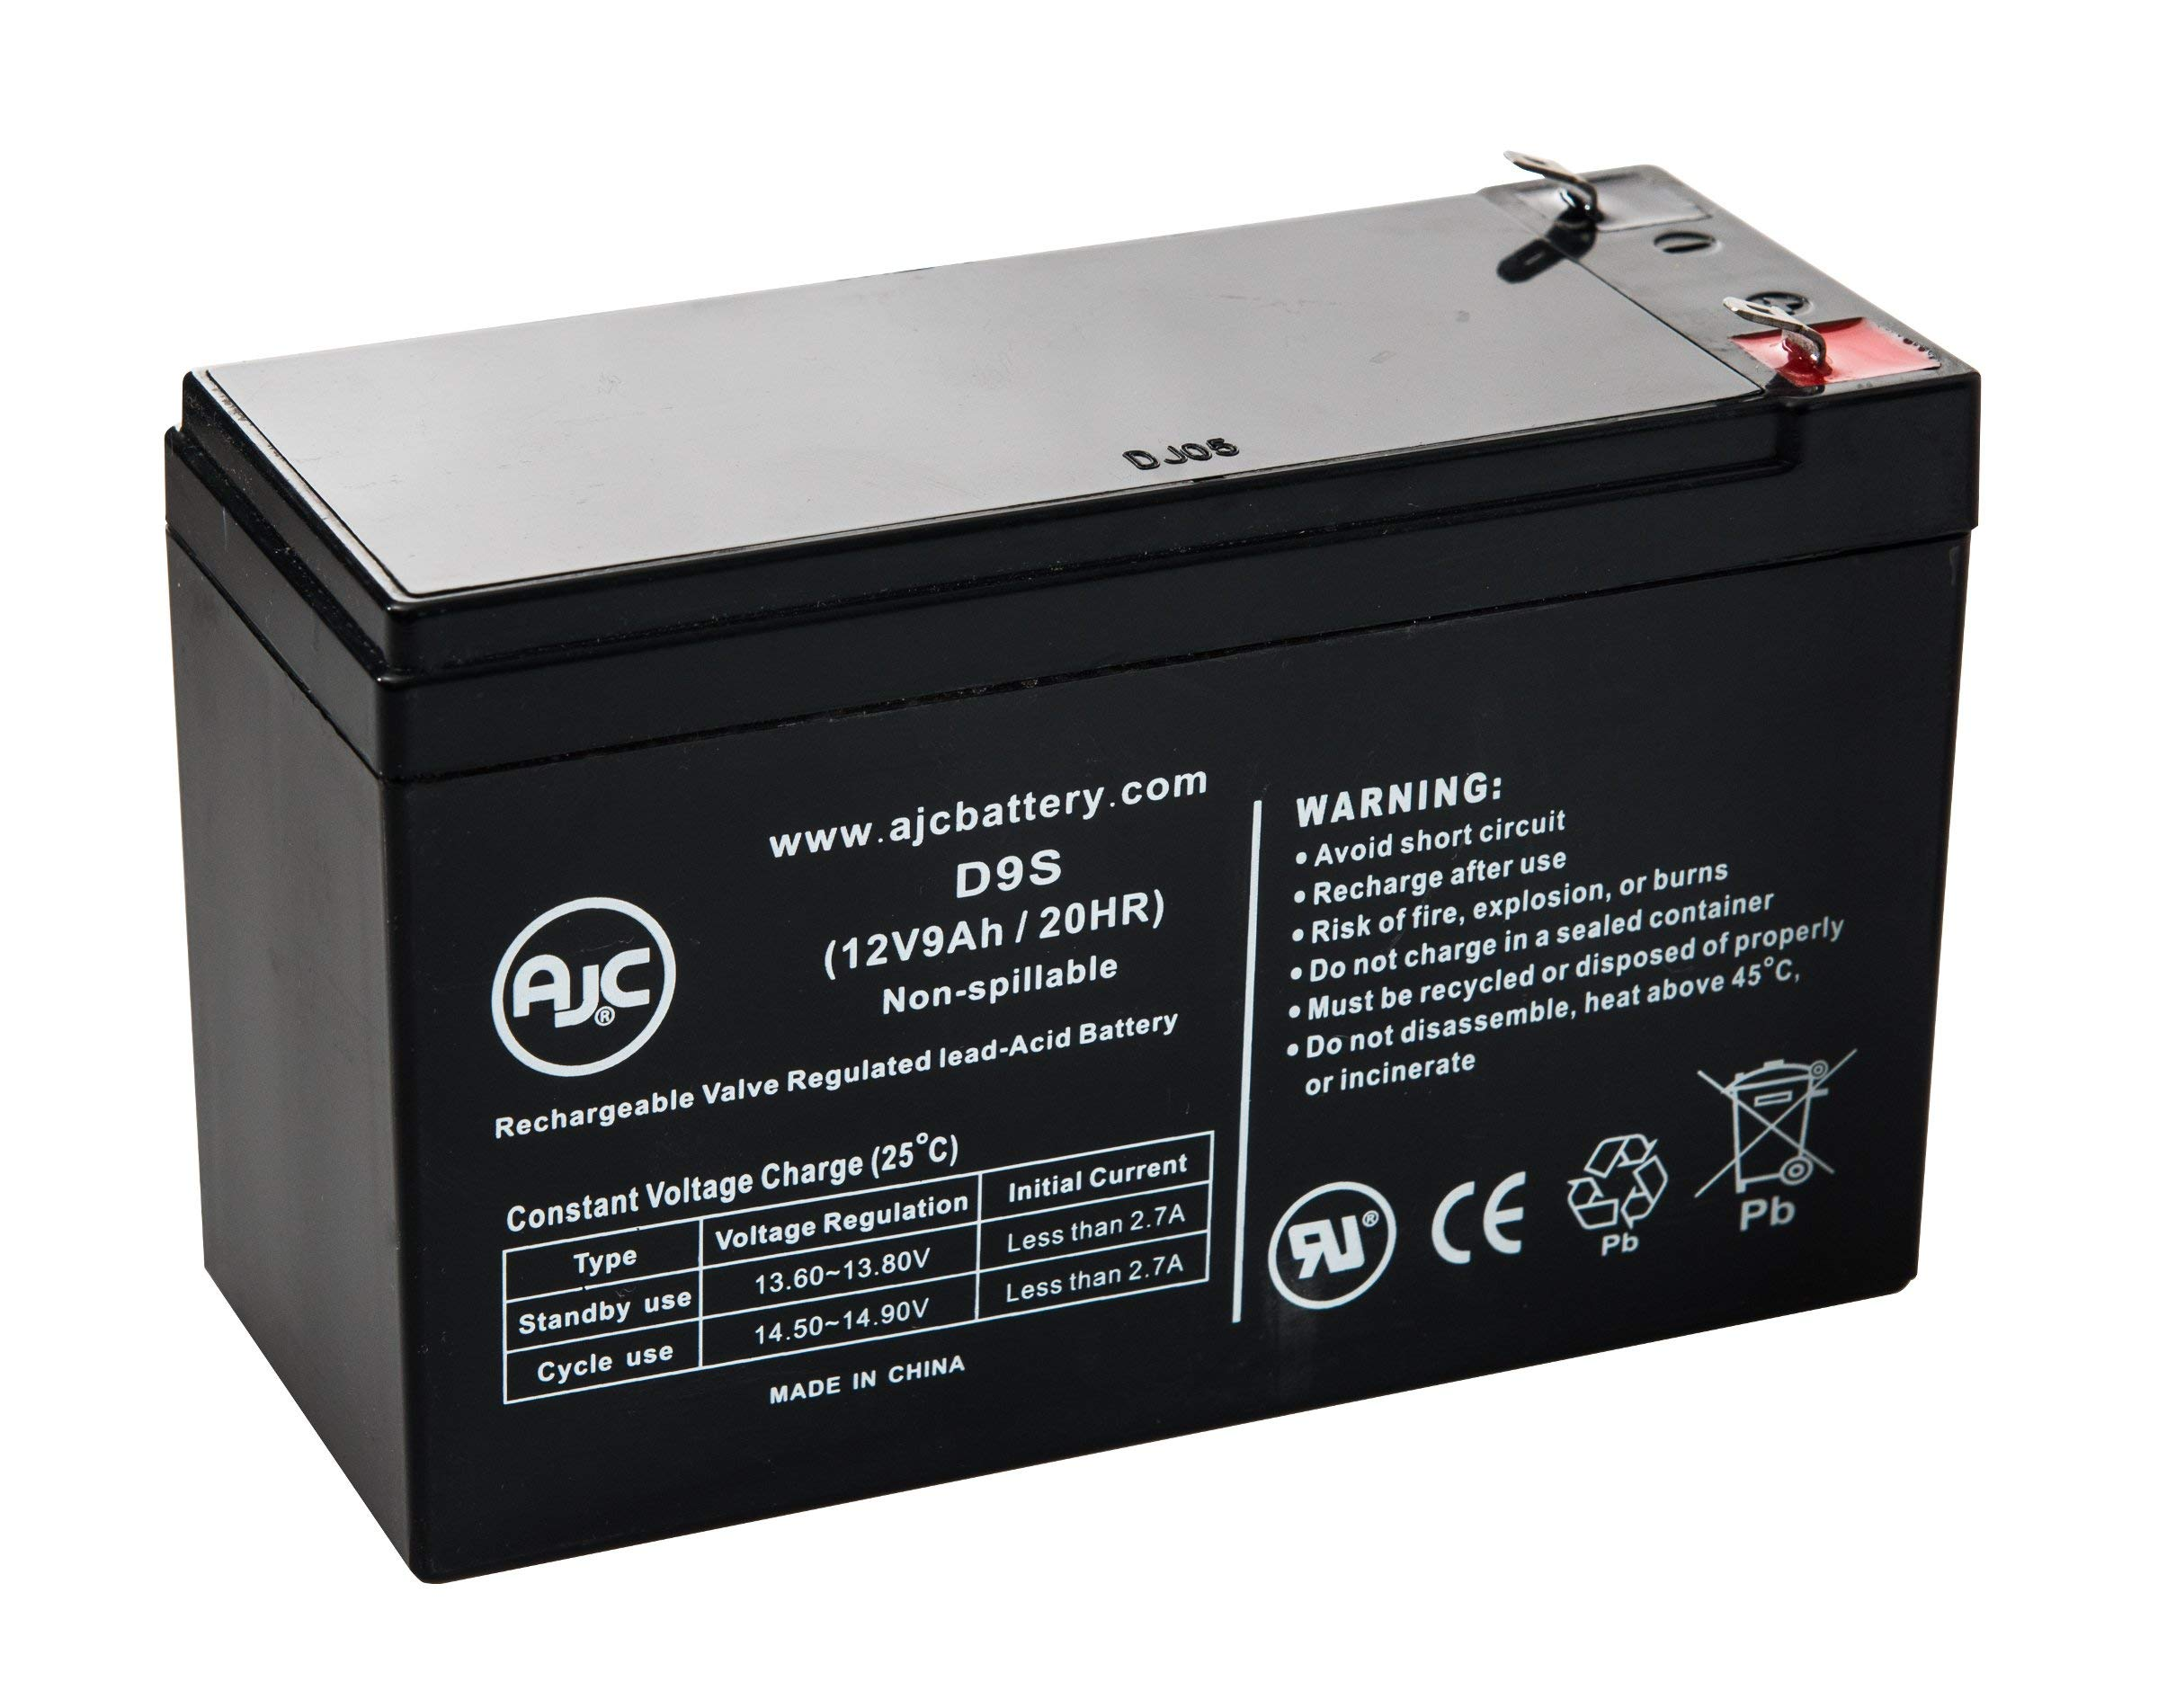 Kung Long WP7-12(28W) 12V 9Ah Sealed Lead Acid Battery - This is an AJC Brand Replacement